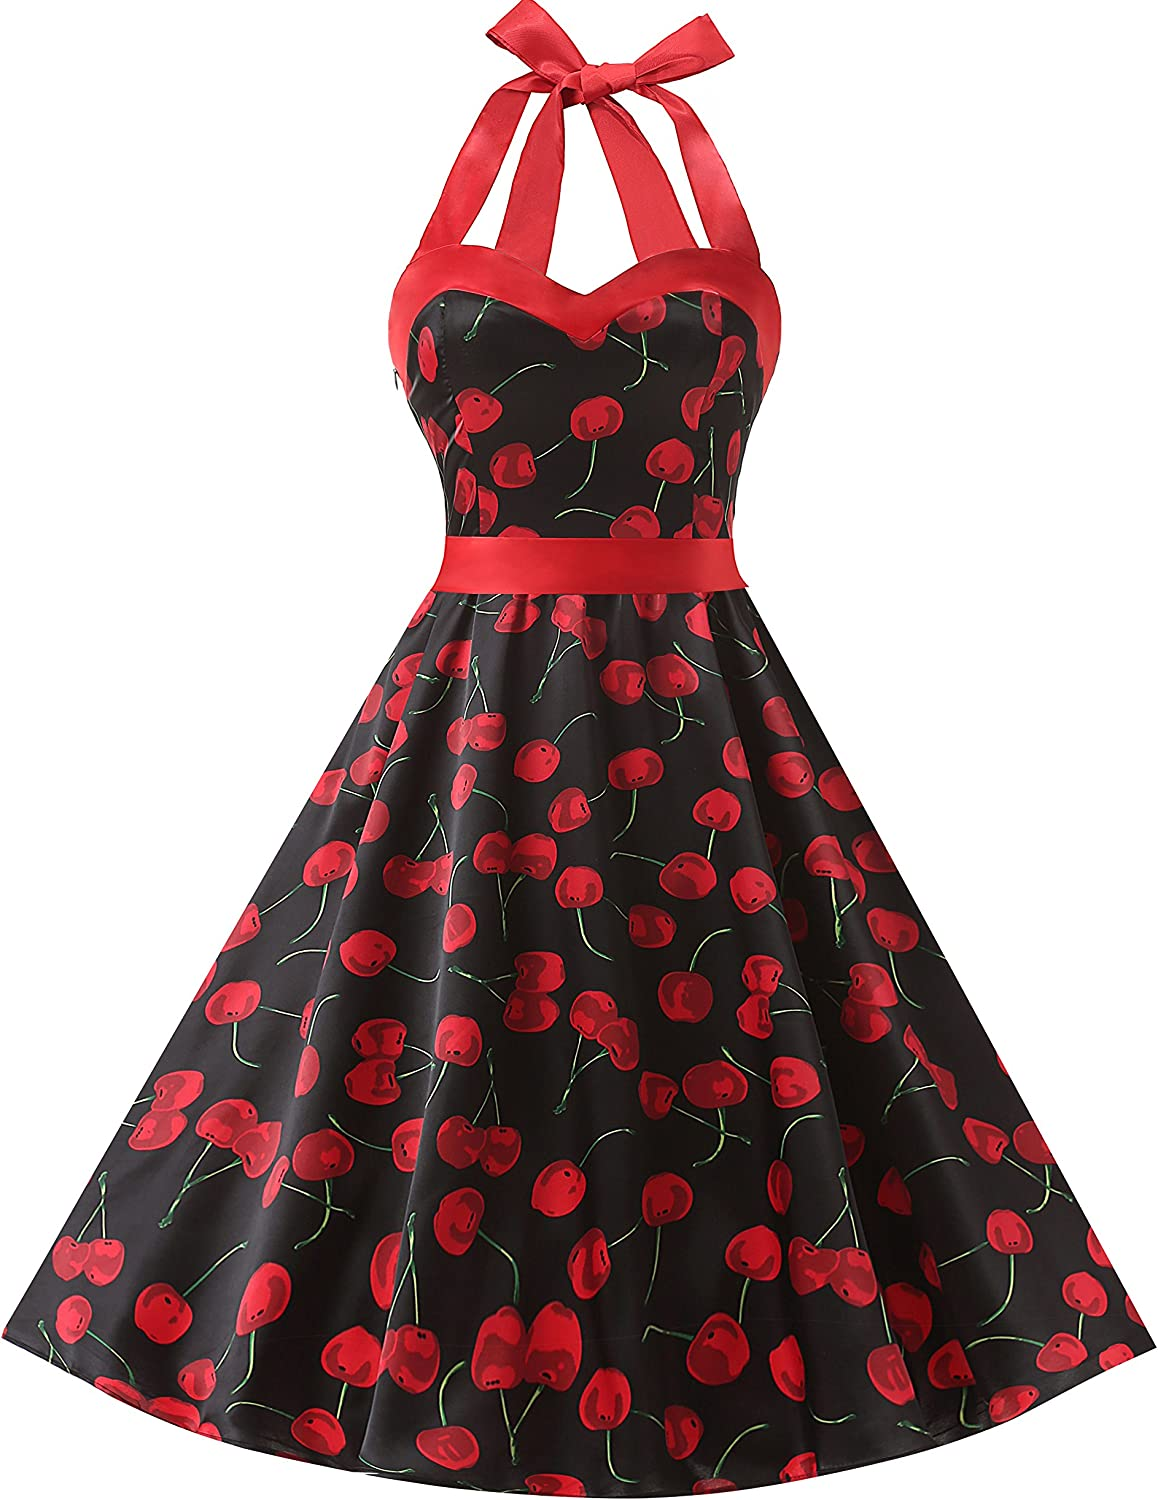 TALLA XXL. Dresstells® Halter 50s Rockabilly Polka Dots Audrey Dress Retro Cocktail Dress Cherry Black XXL